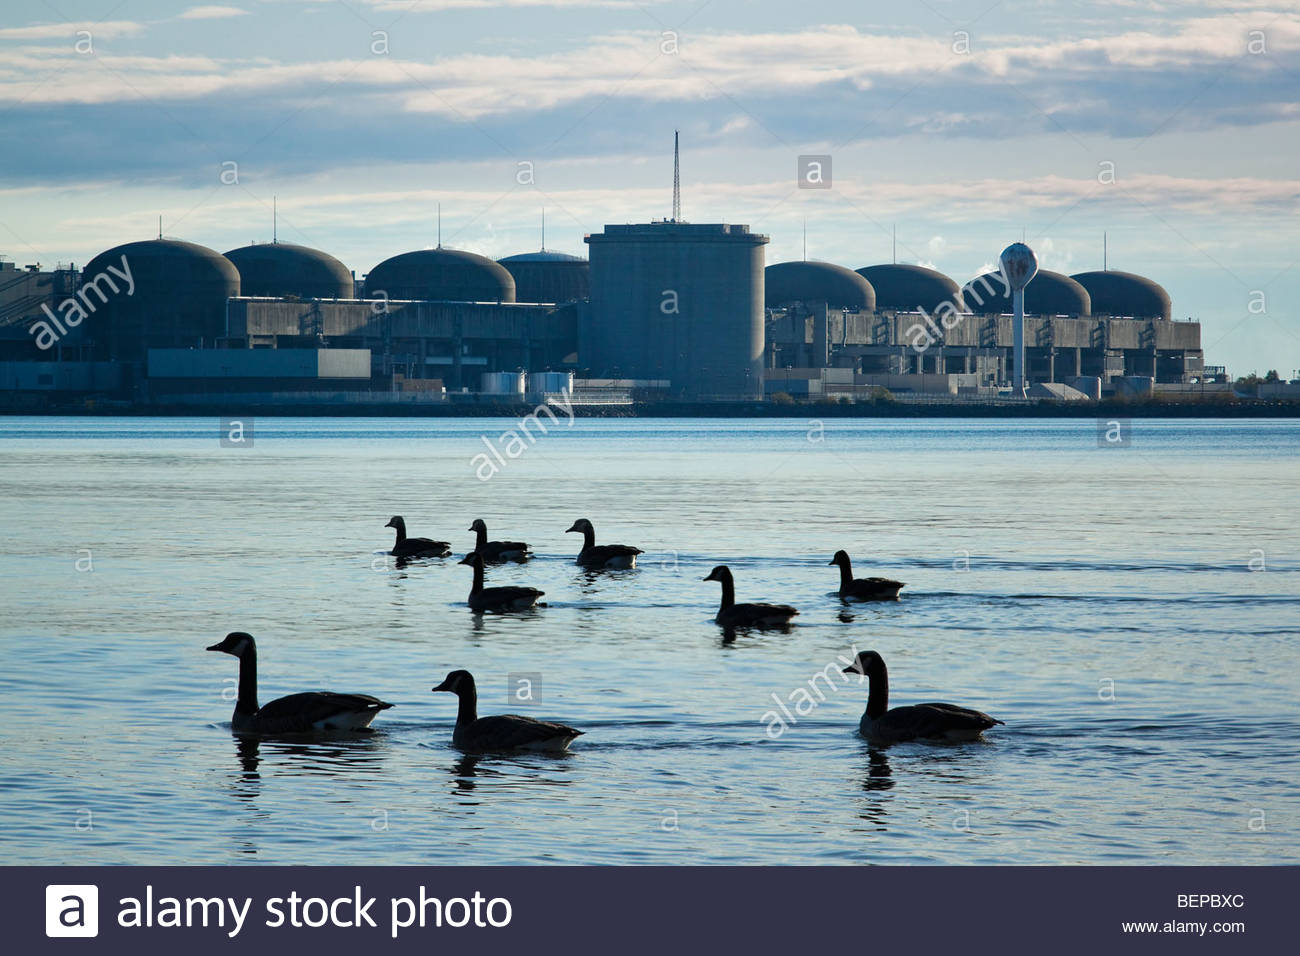 canada-geese-and-8-reactors-of-candu-nuc